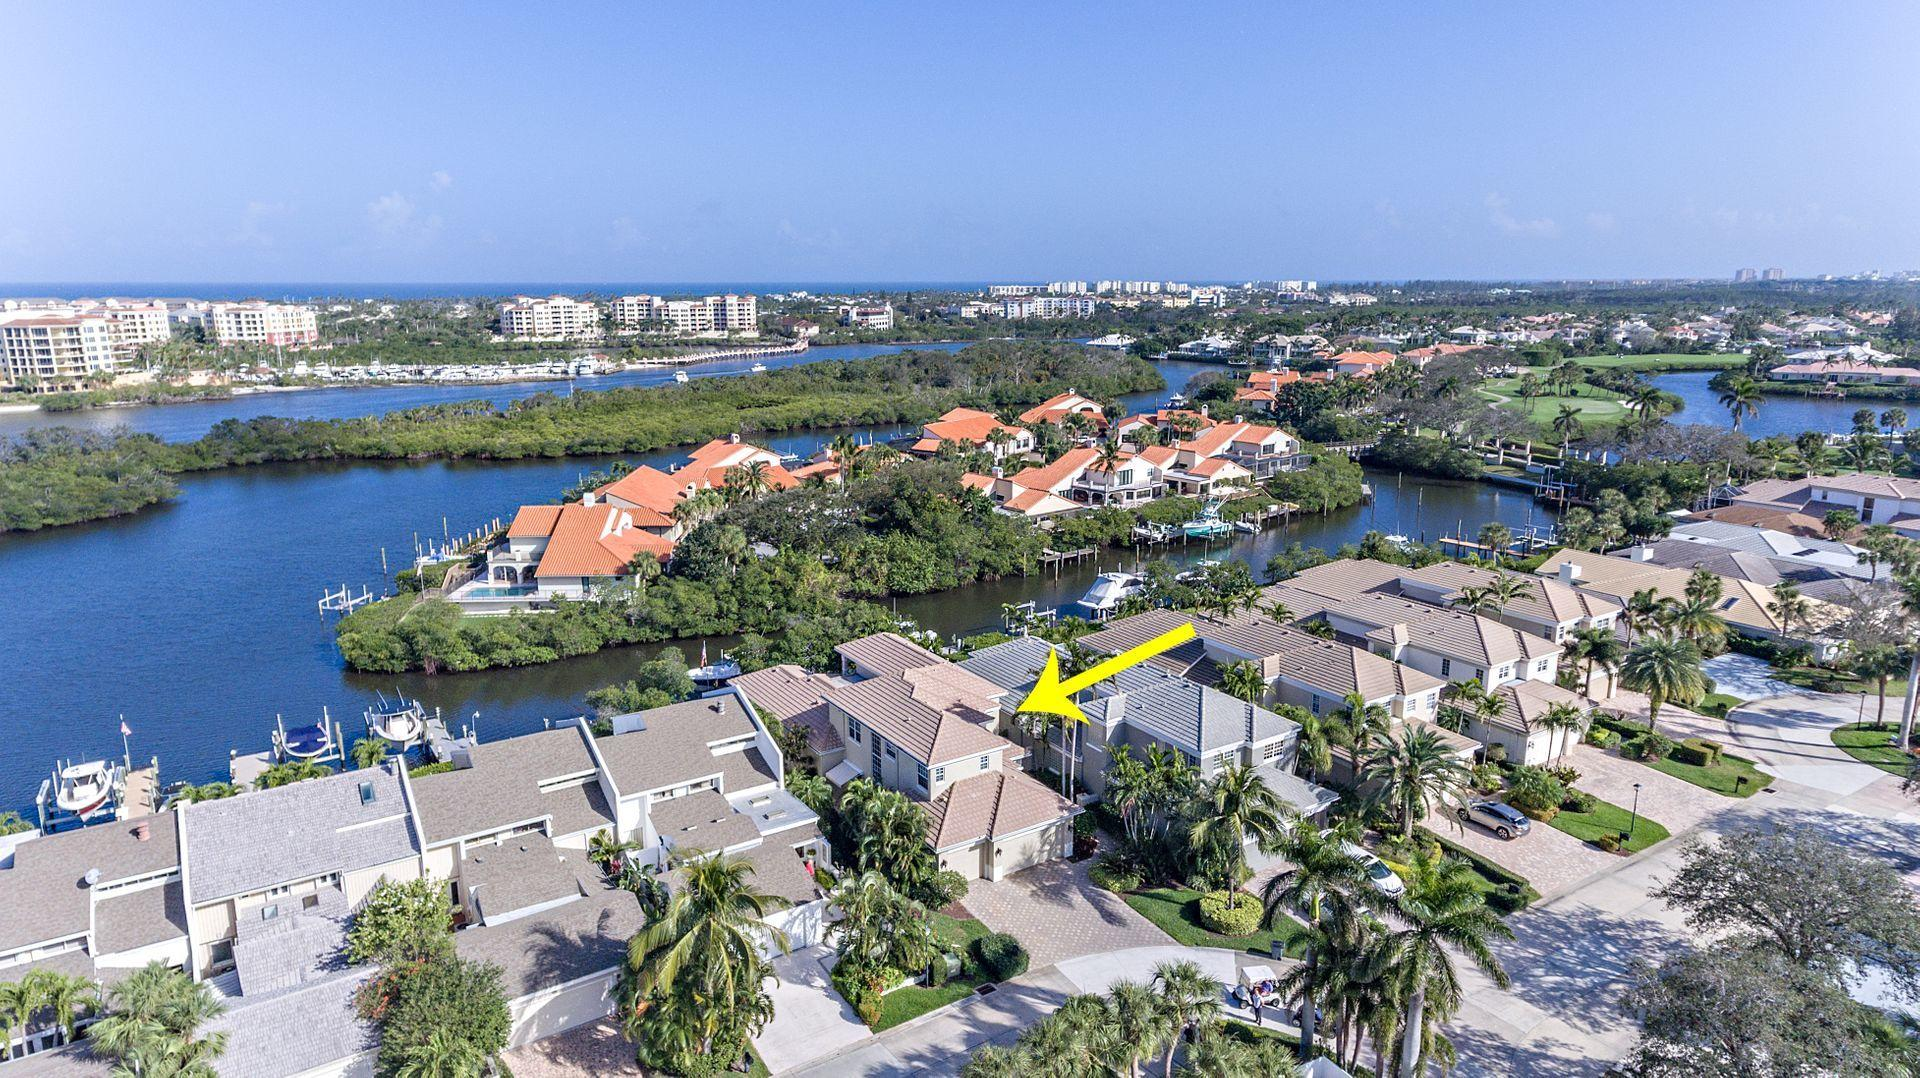 BAYTOWNE OF JONATHANS LANDING LOT 11